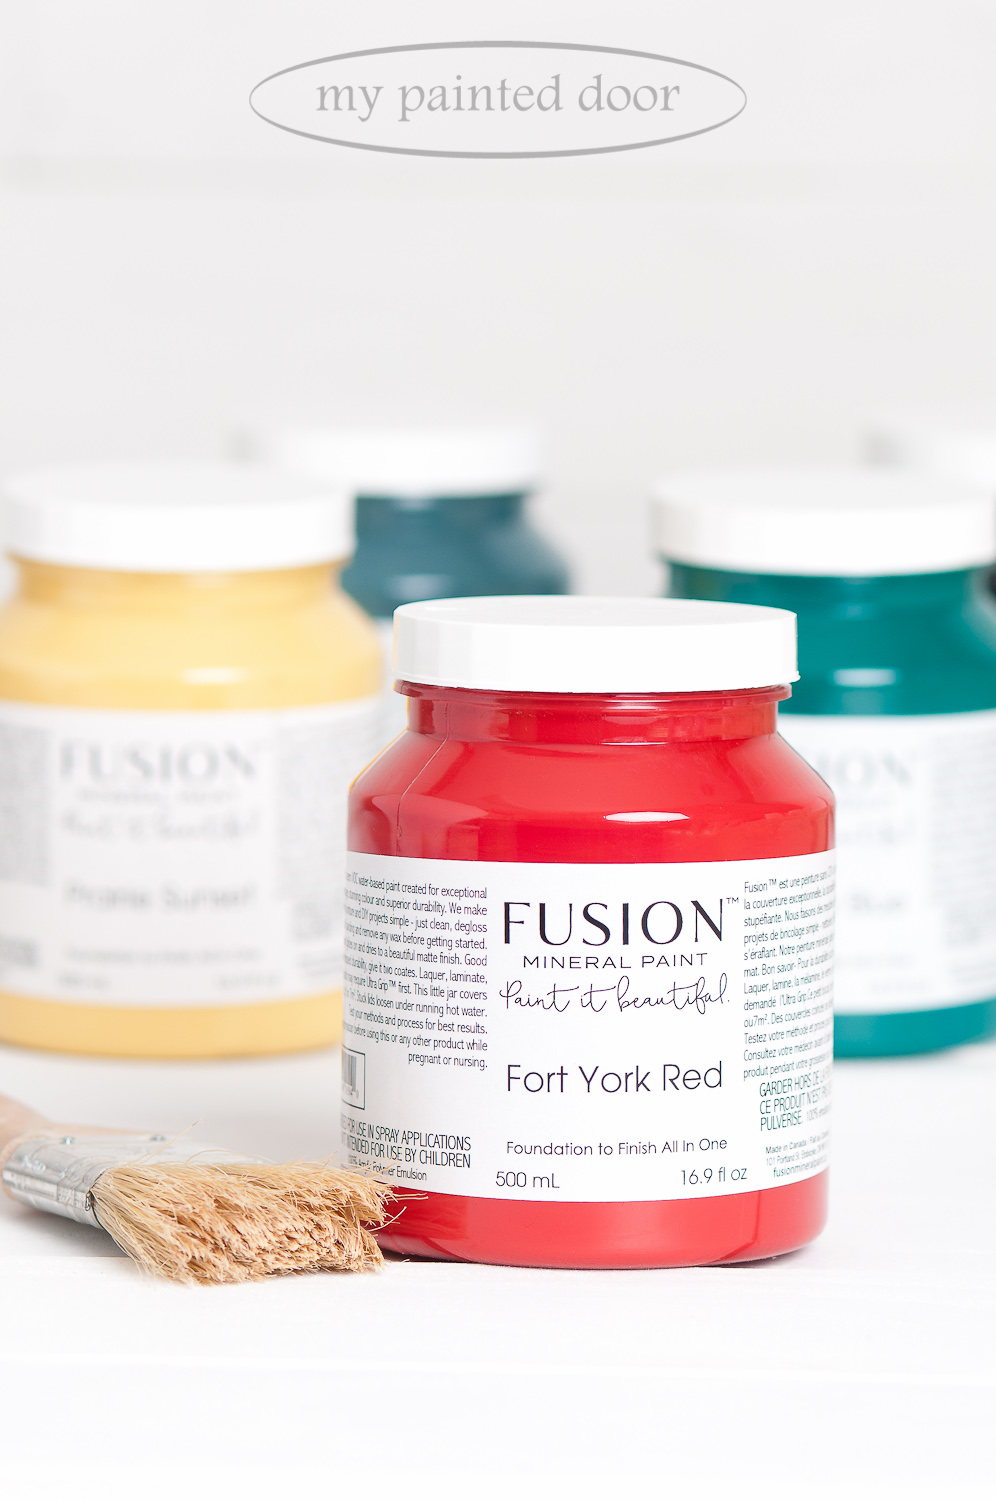 How Much Will One Bottle of Fusion Mineral Paint Cover? Read My Blog Post To Find Out!